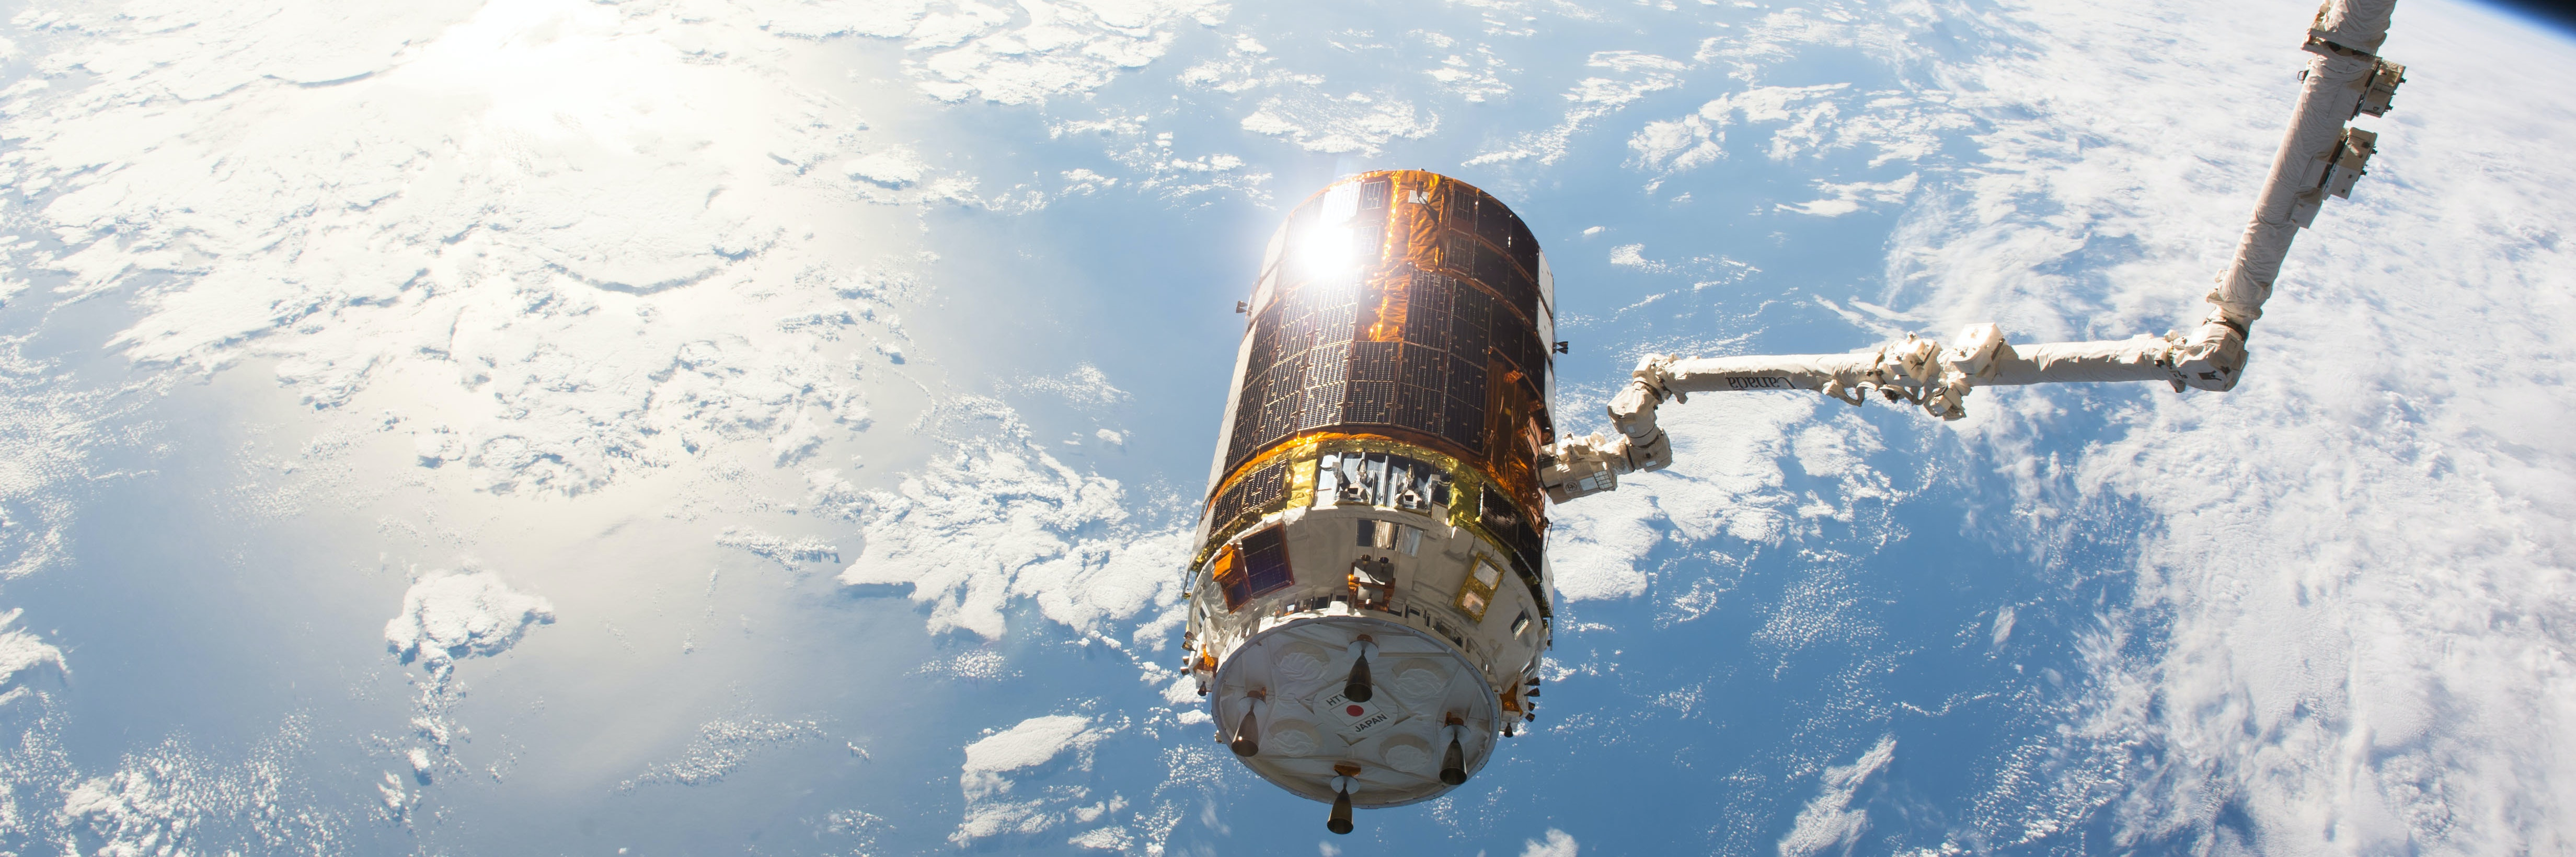 Japanese HTV-6 Released from Station